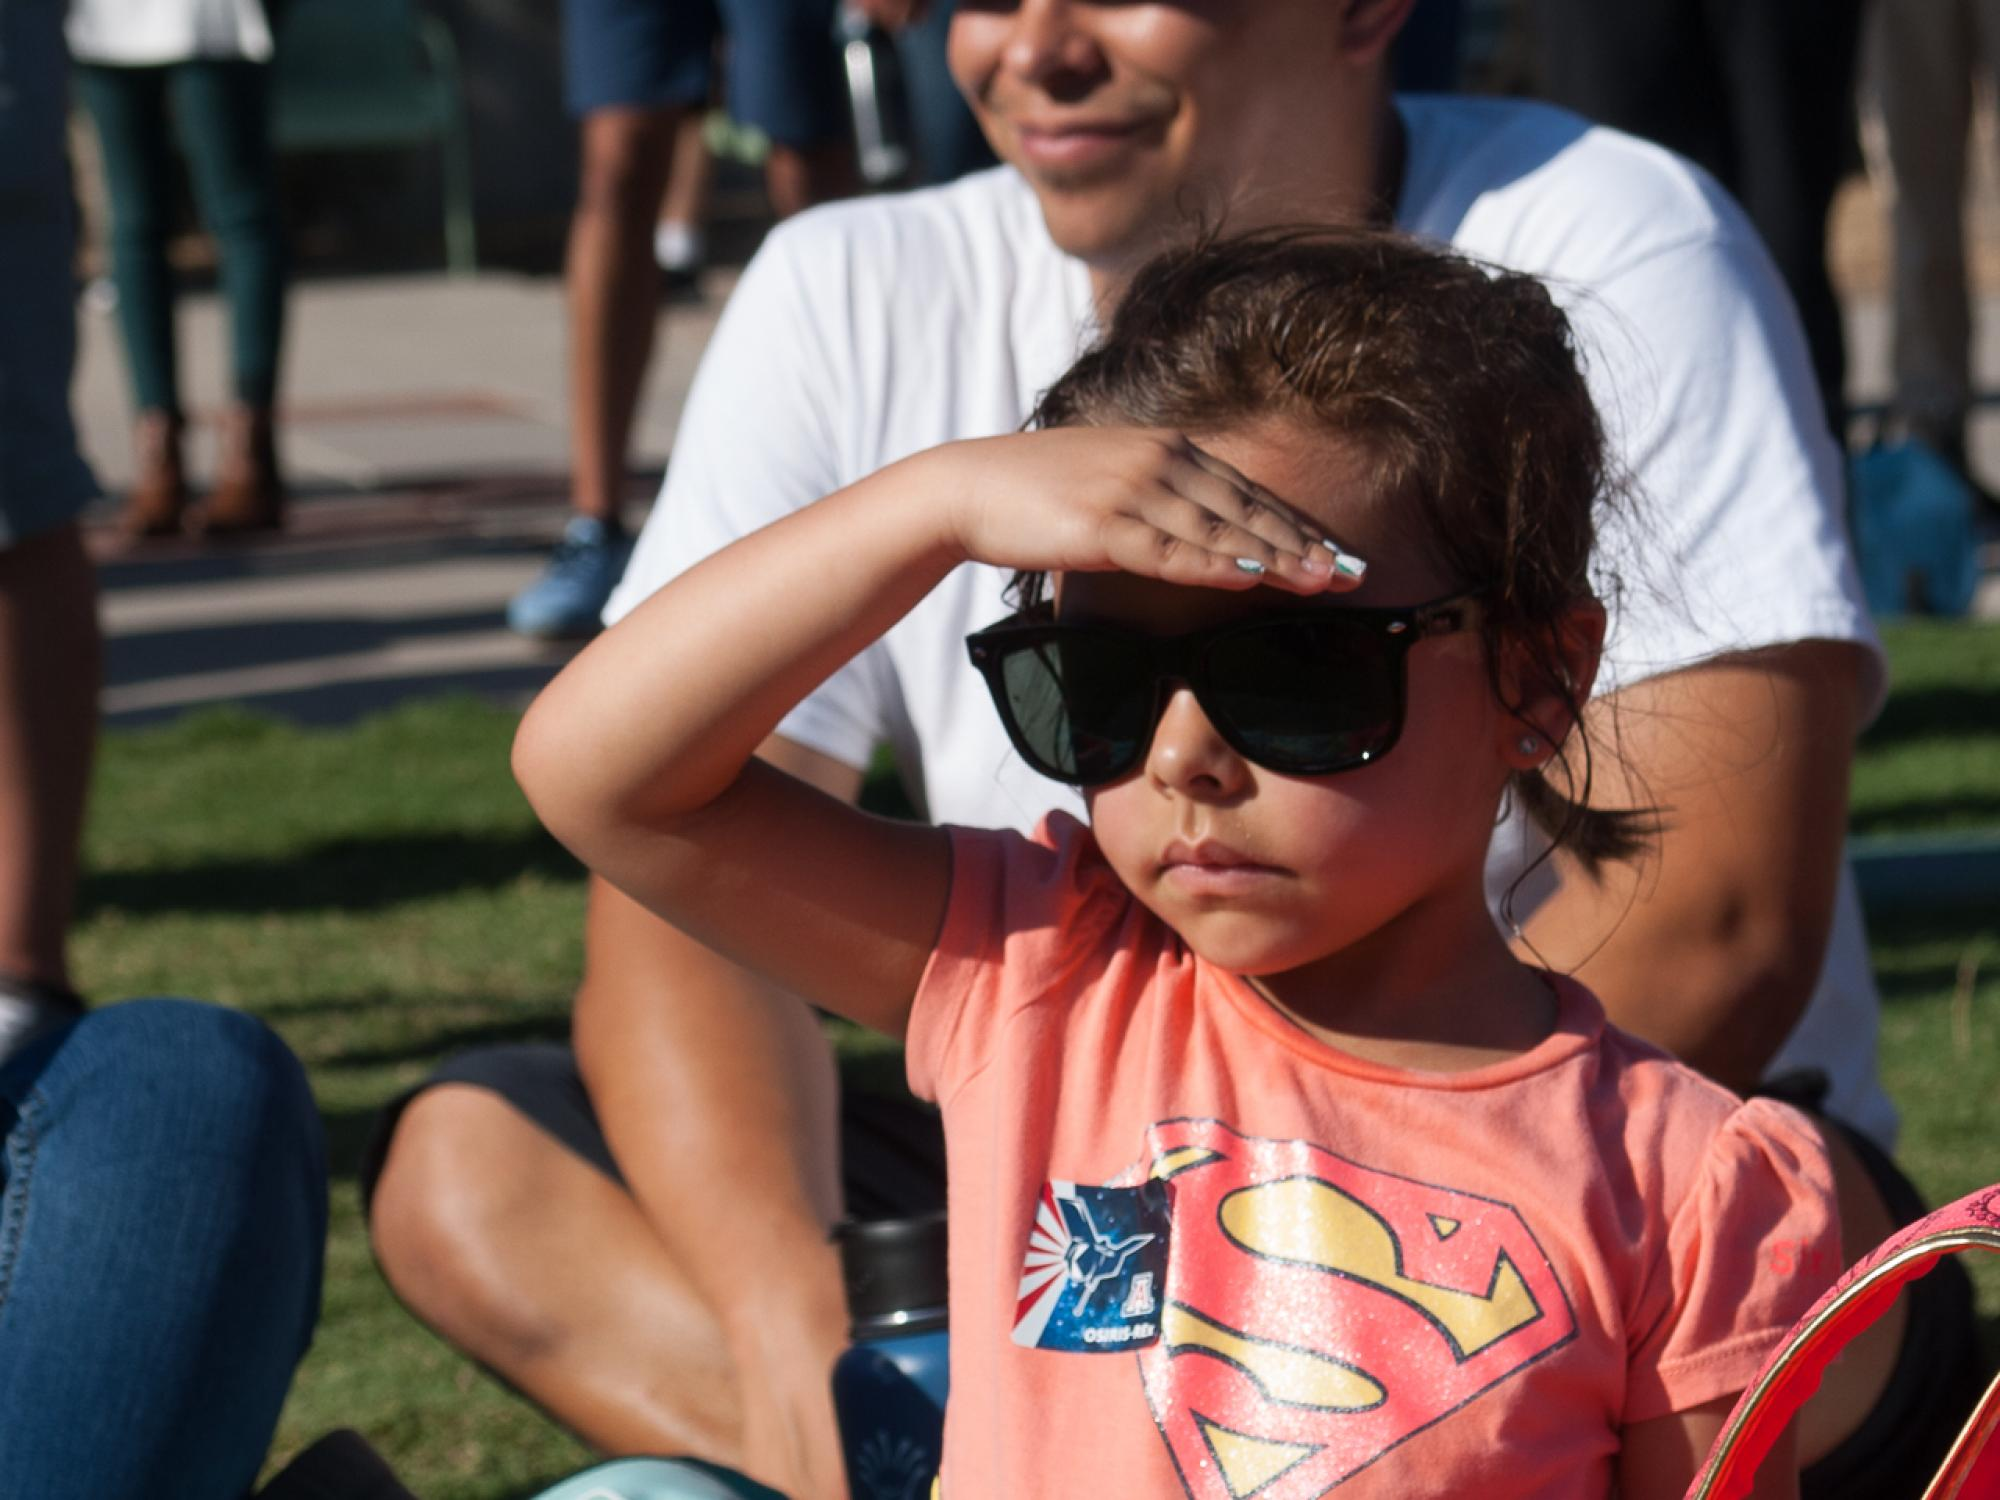 Kaleila Rodriguez, 5, watching her first rocket launch.